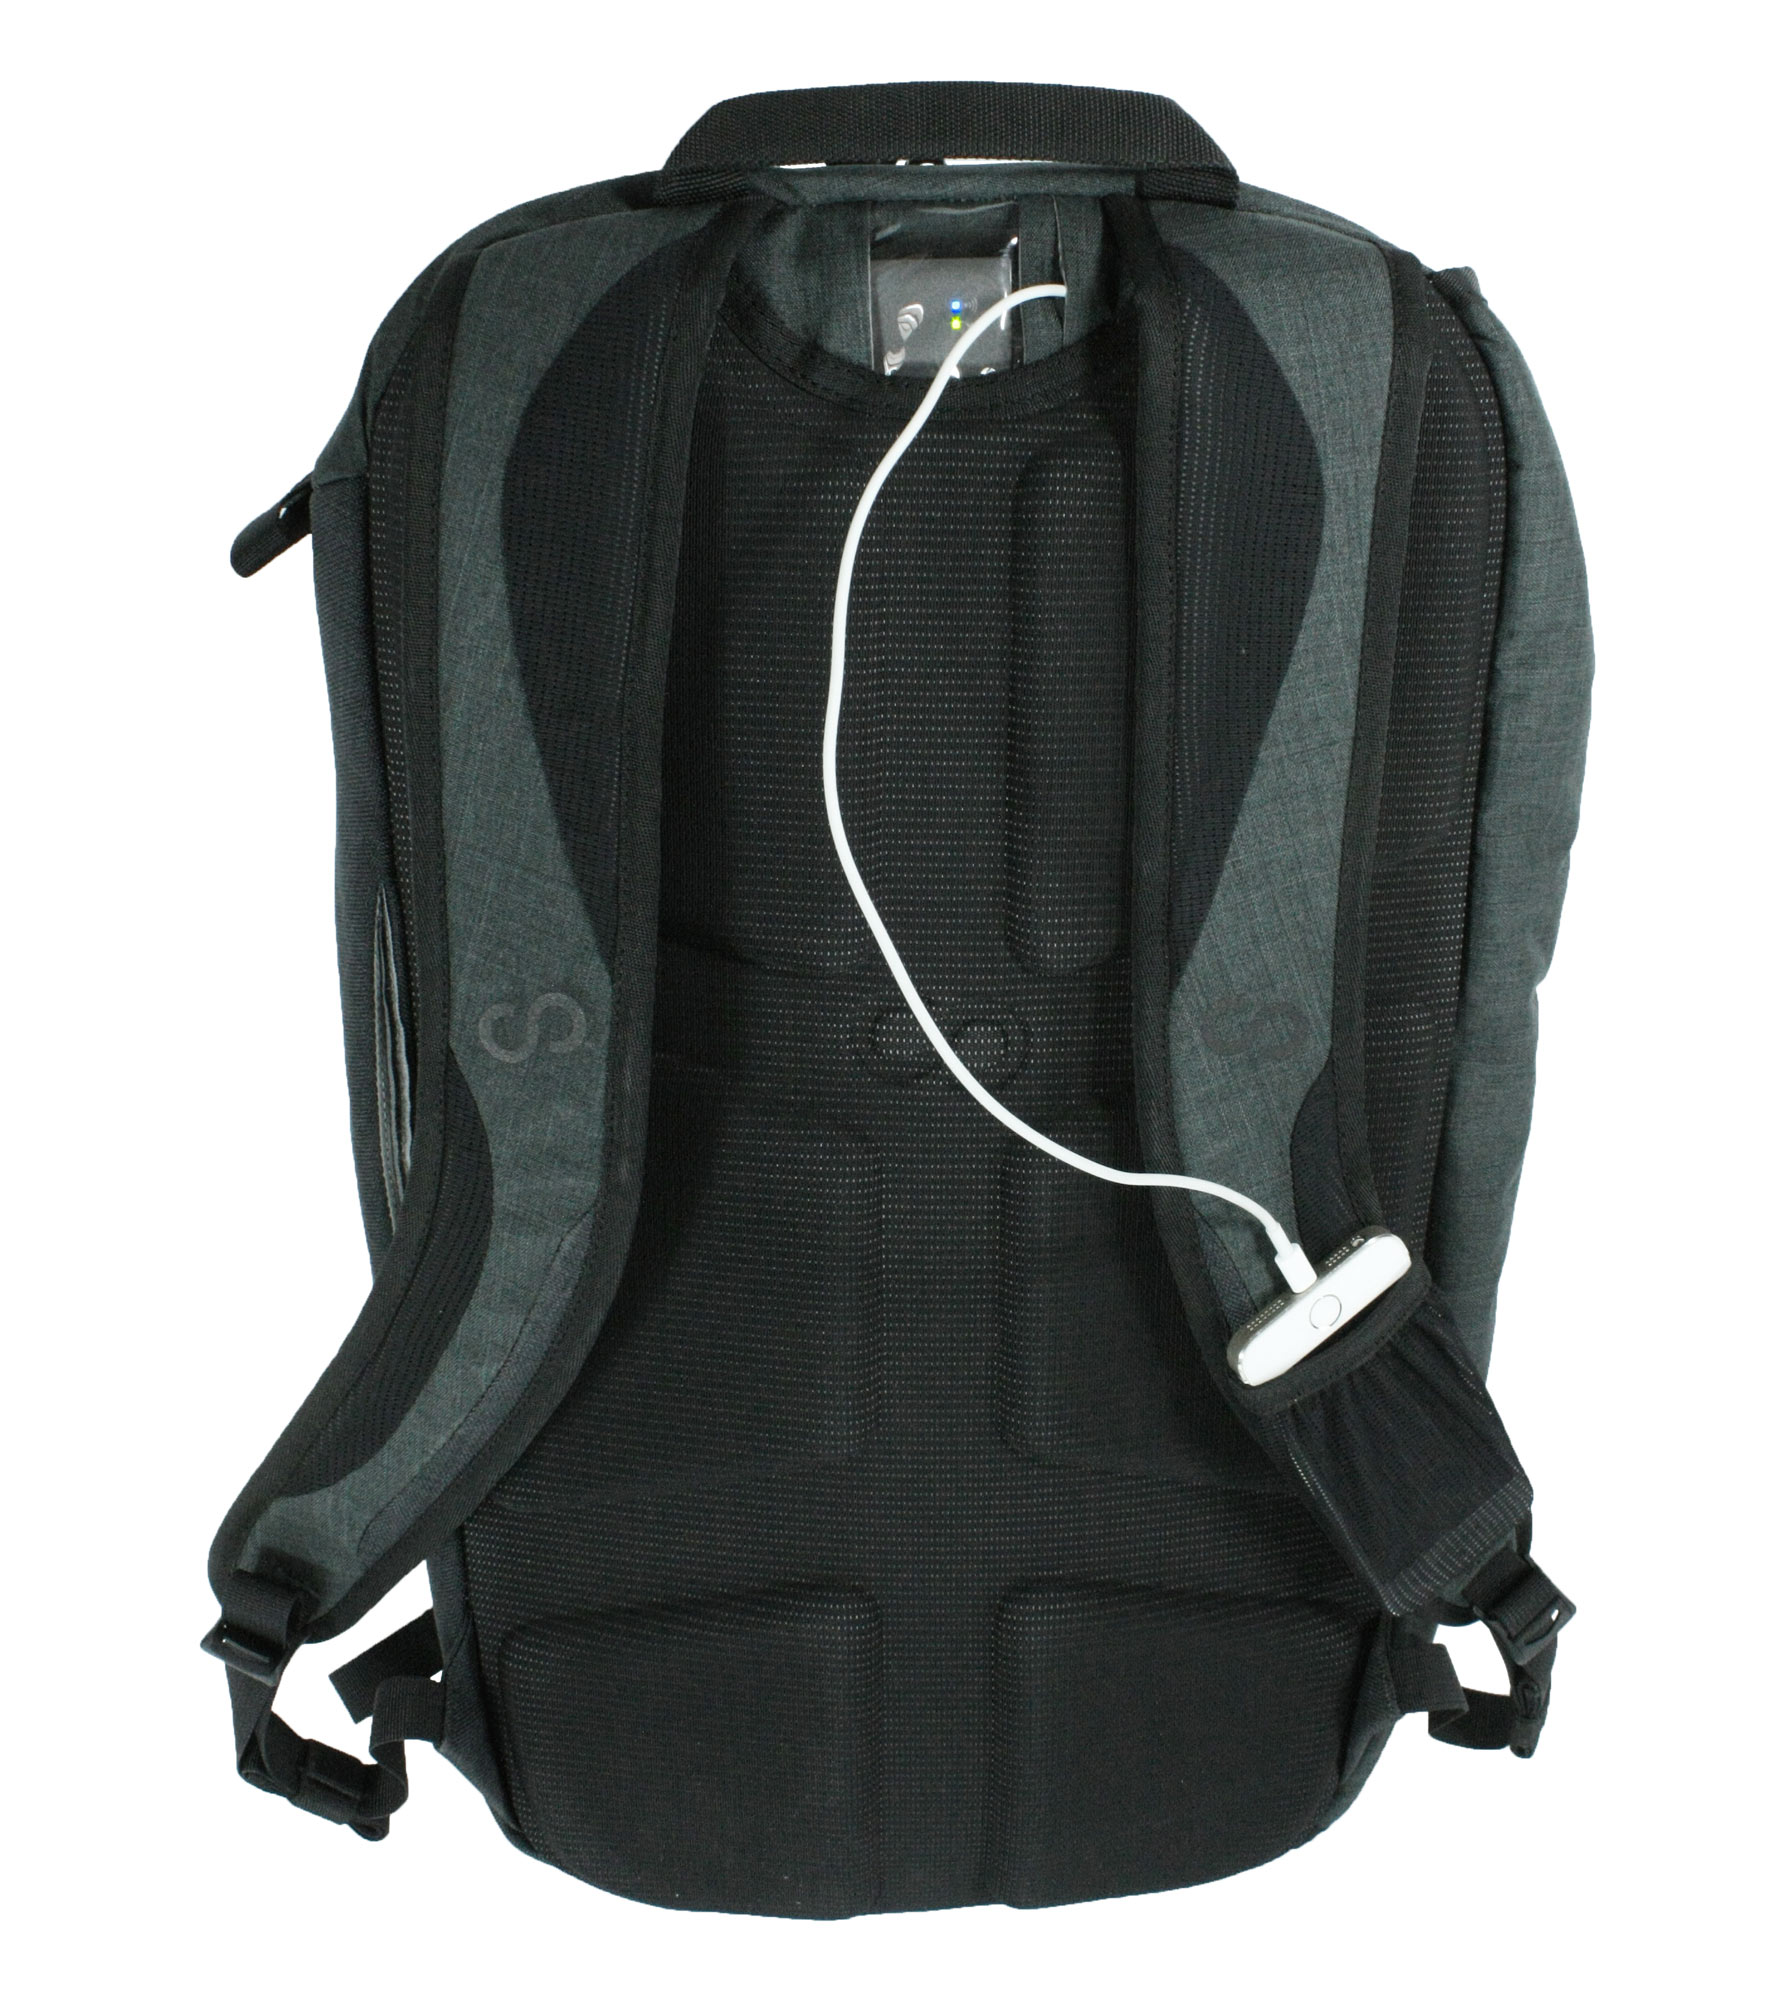 The Colfax backpack has an internal charging system.